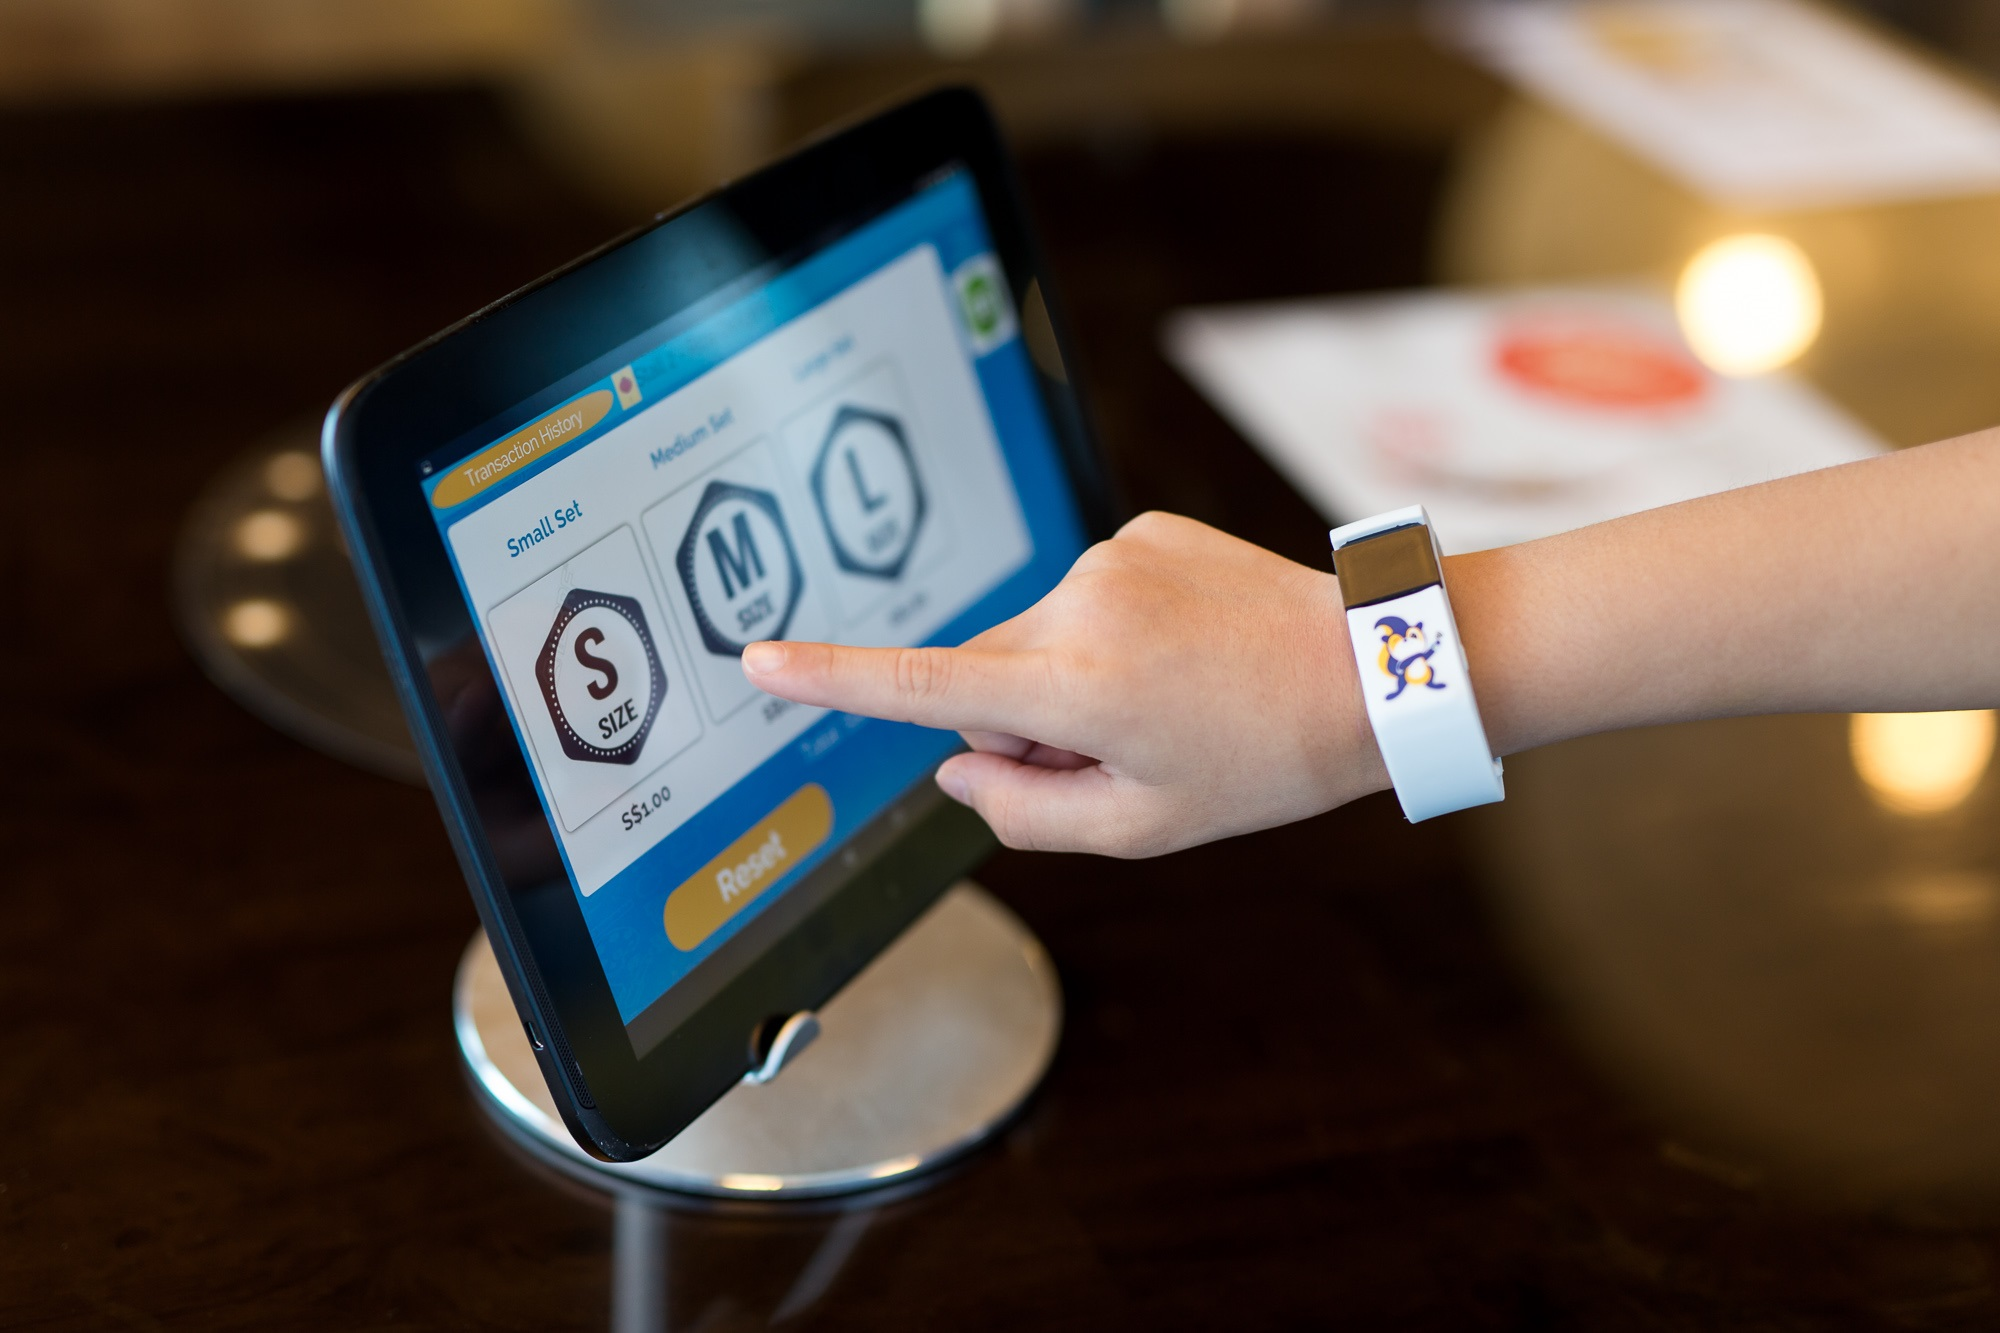 To purchase an item in school, students can select the relevant items at a contactless terminal in the canteen or bookstore, and then scan their POSB Smart Buddy watch or card to complete the purchase.